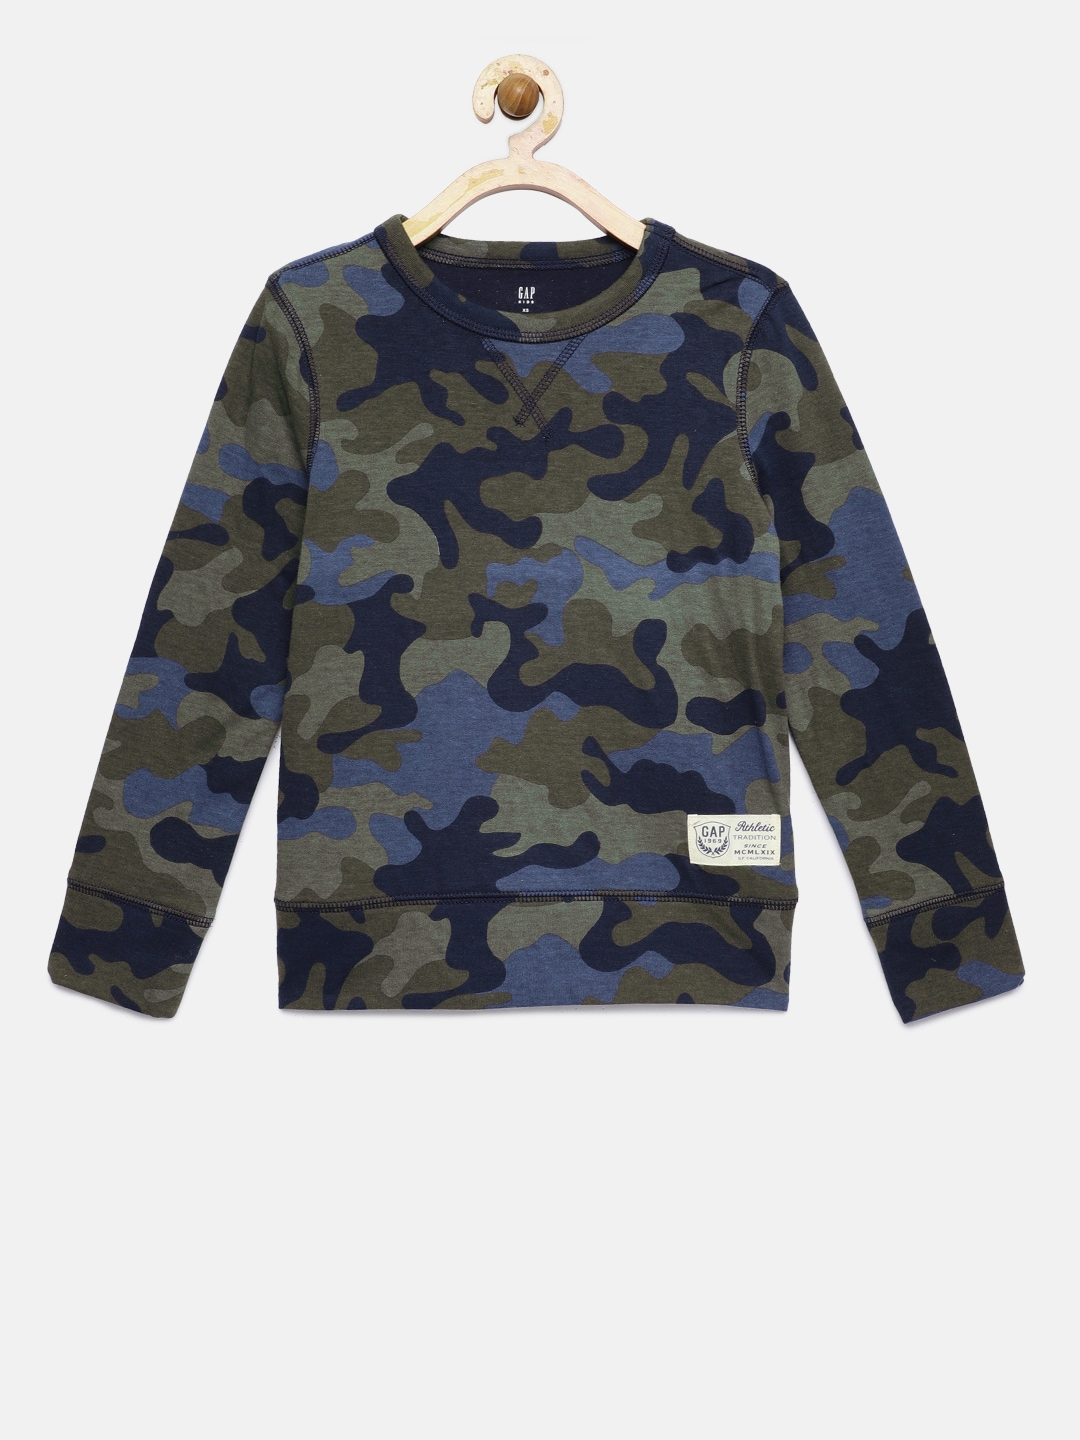 9bf8109d2199 Camouflage Tshirts - Buy Camouflage Tshirts online in India